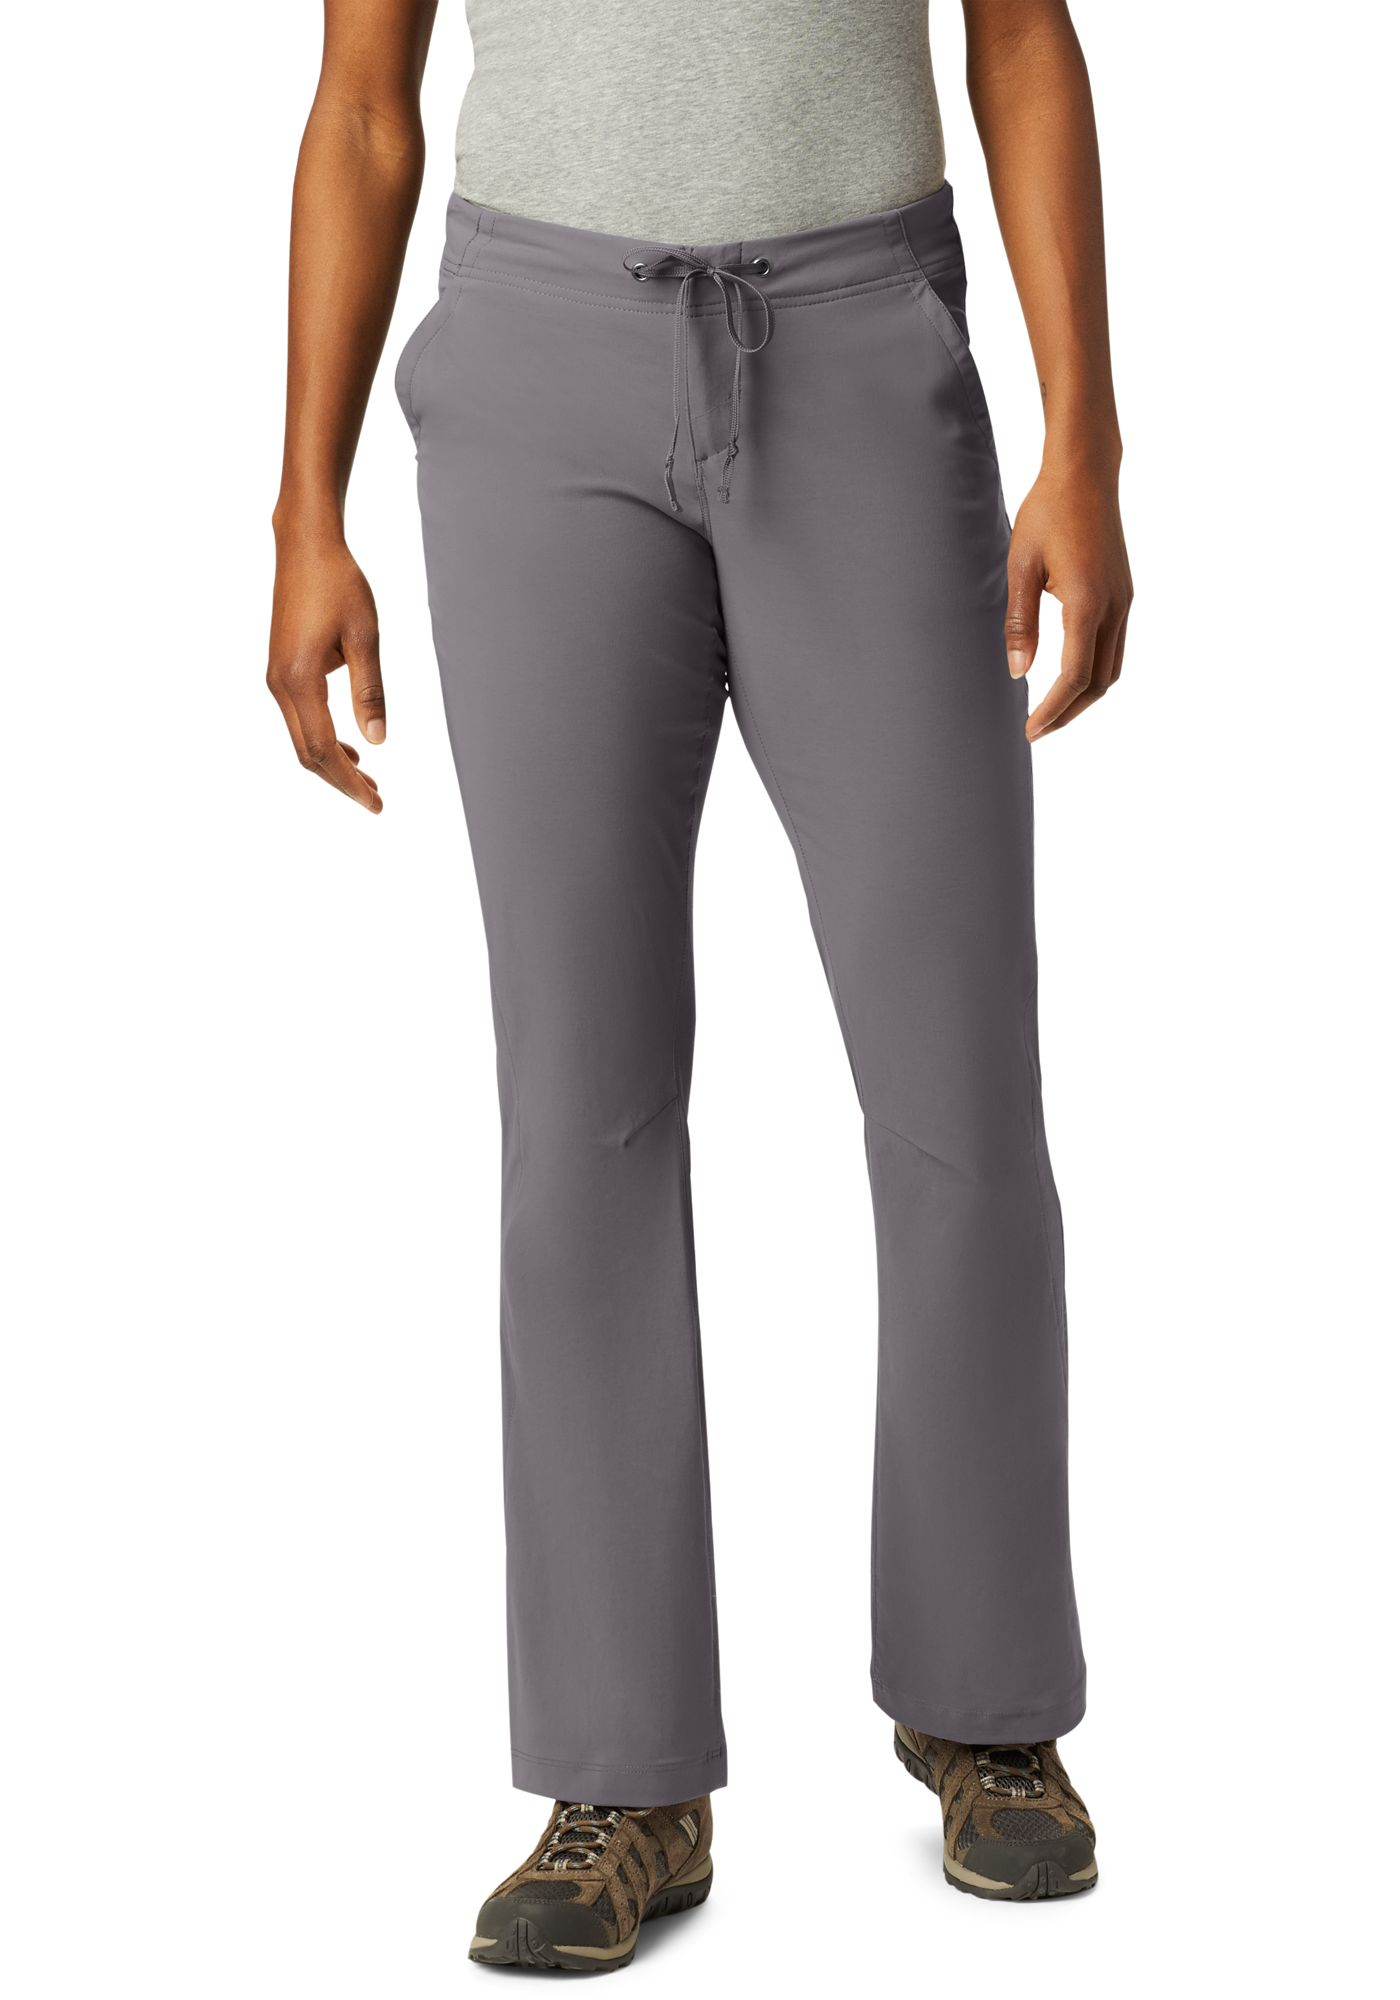 Columbia Women's Anytime Outdoor Pants